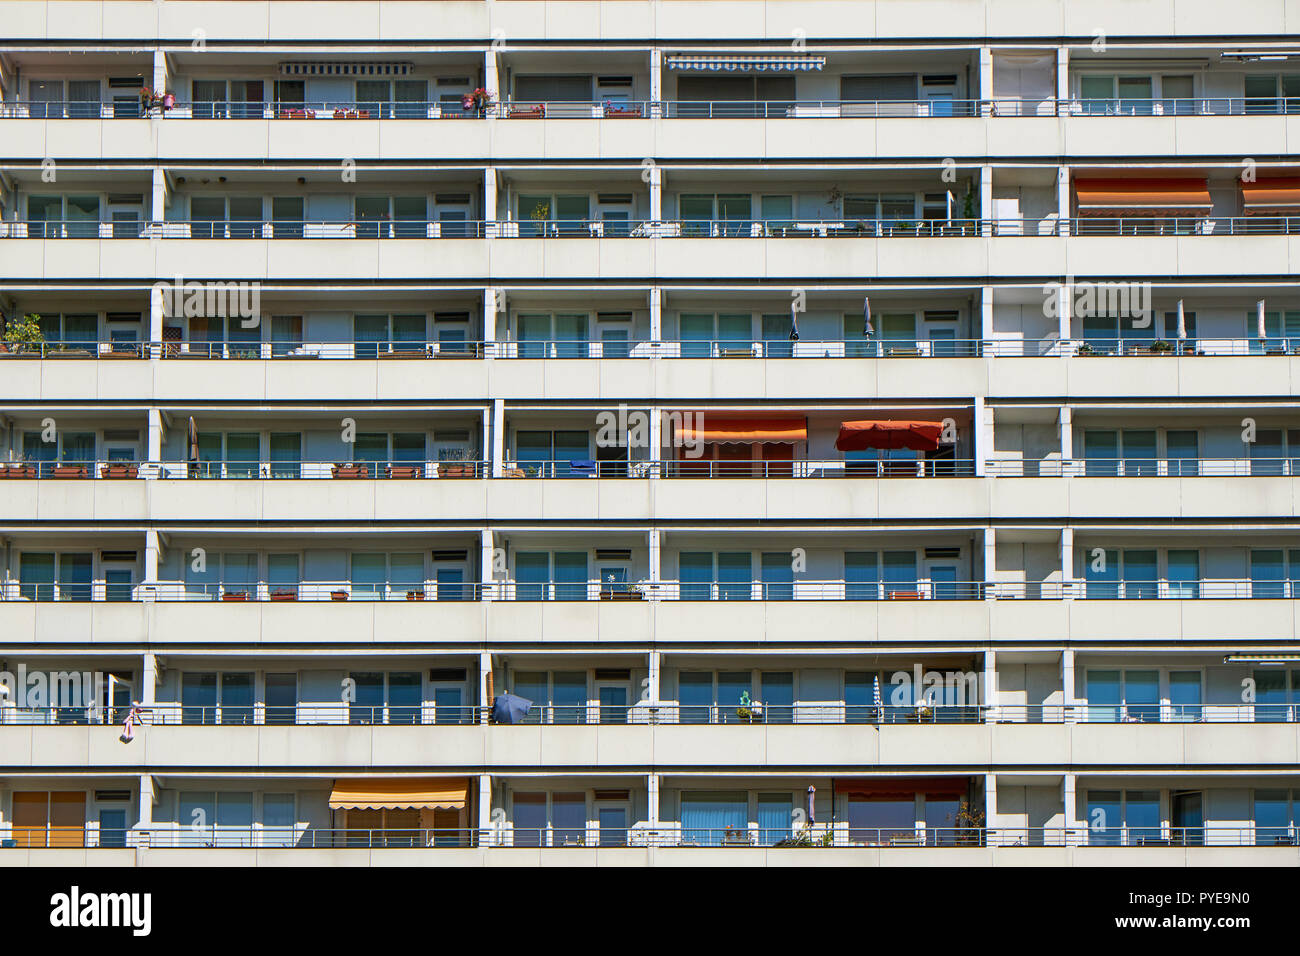 Facade of a prefabricated public housing building seen in Berlin, Germany - Stock Image